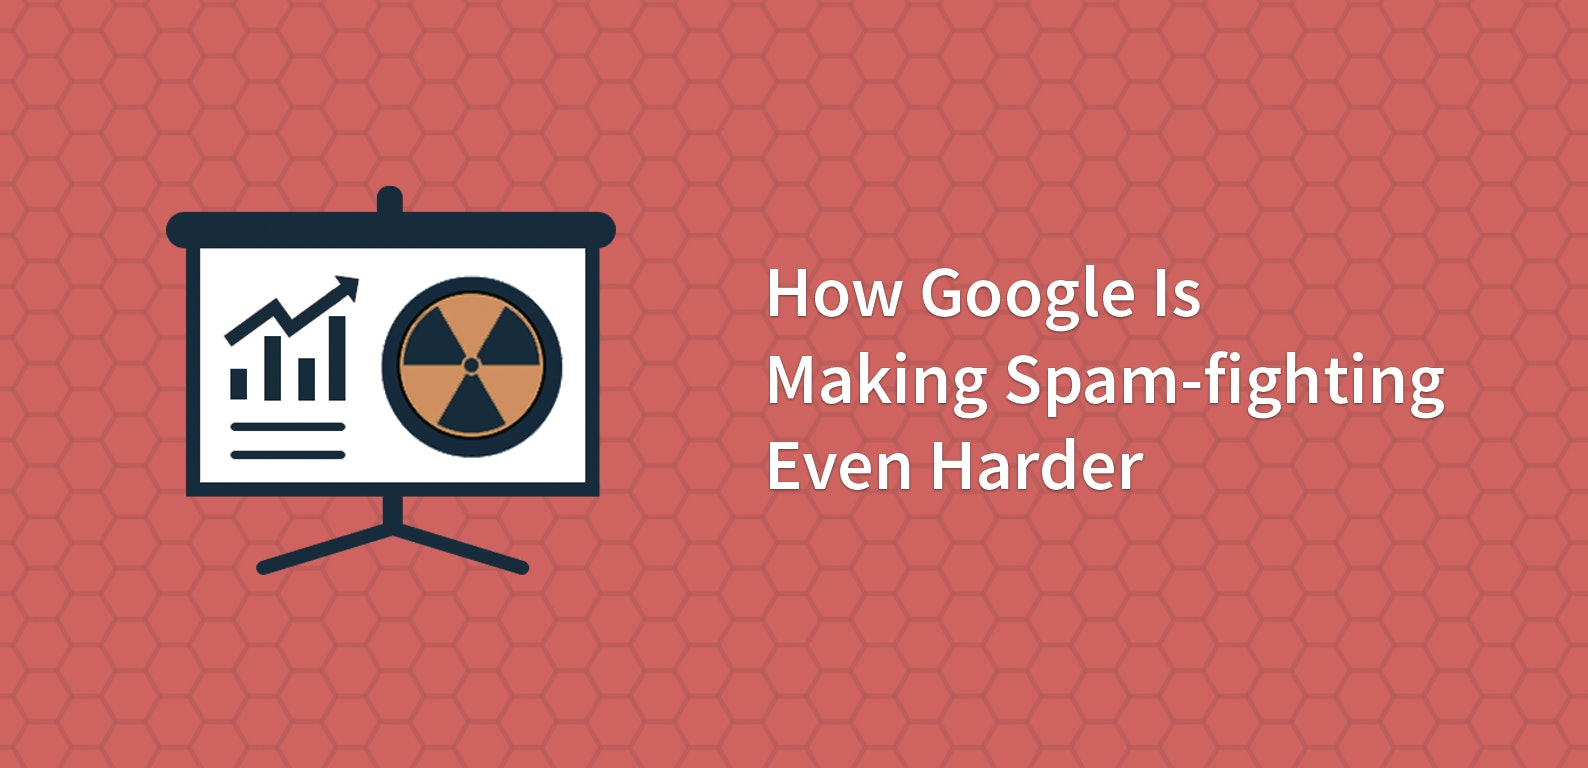 How Google Is Making Spam-fighting Even Harder